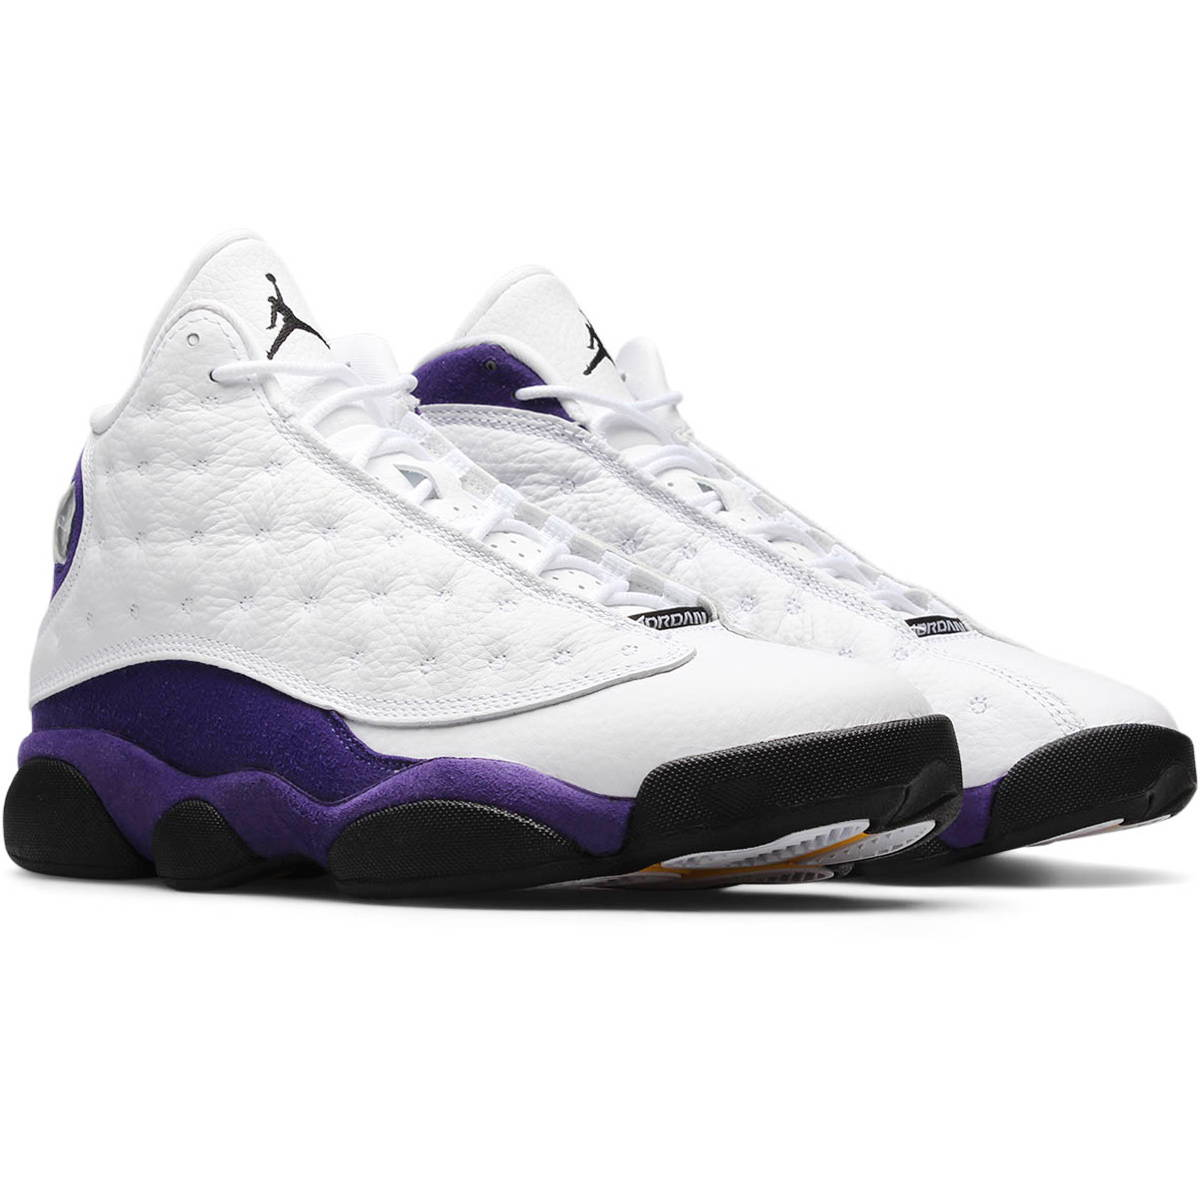 new product 7ec81 cb653 7/19/19: Air Jordan 13 Retro – Bodega